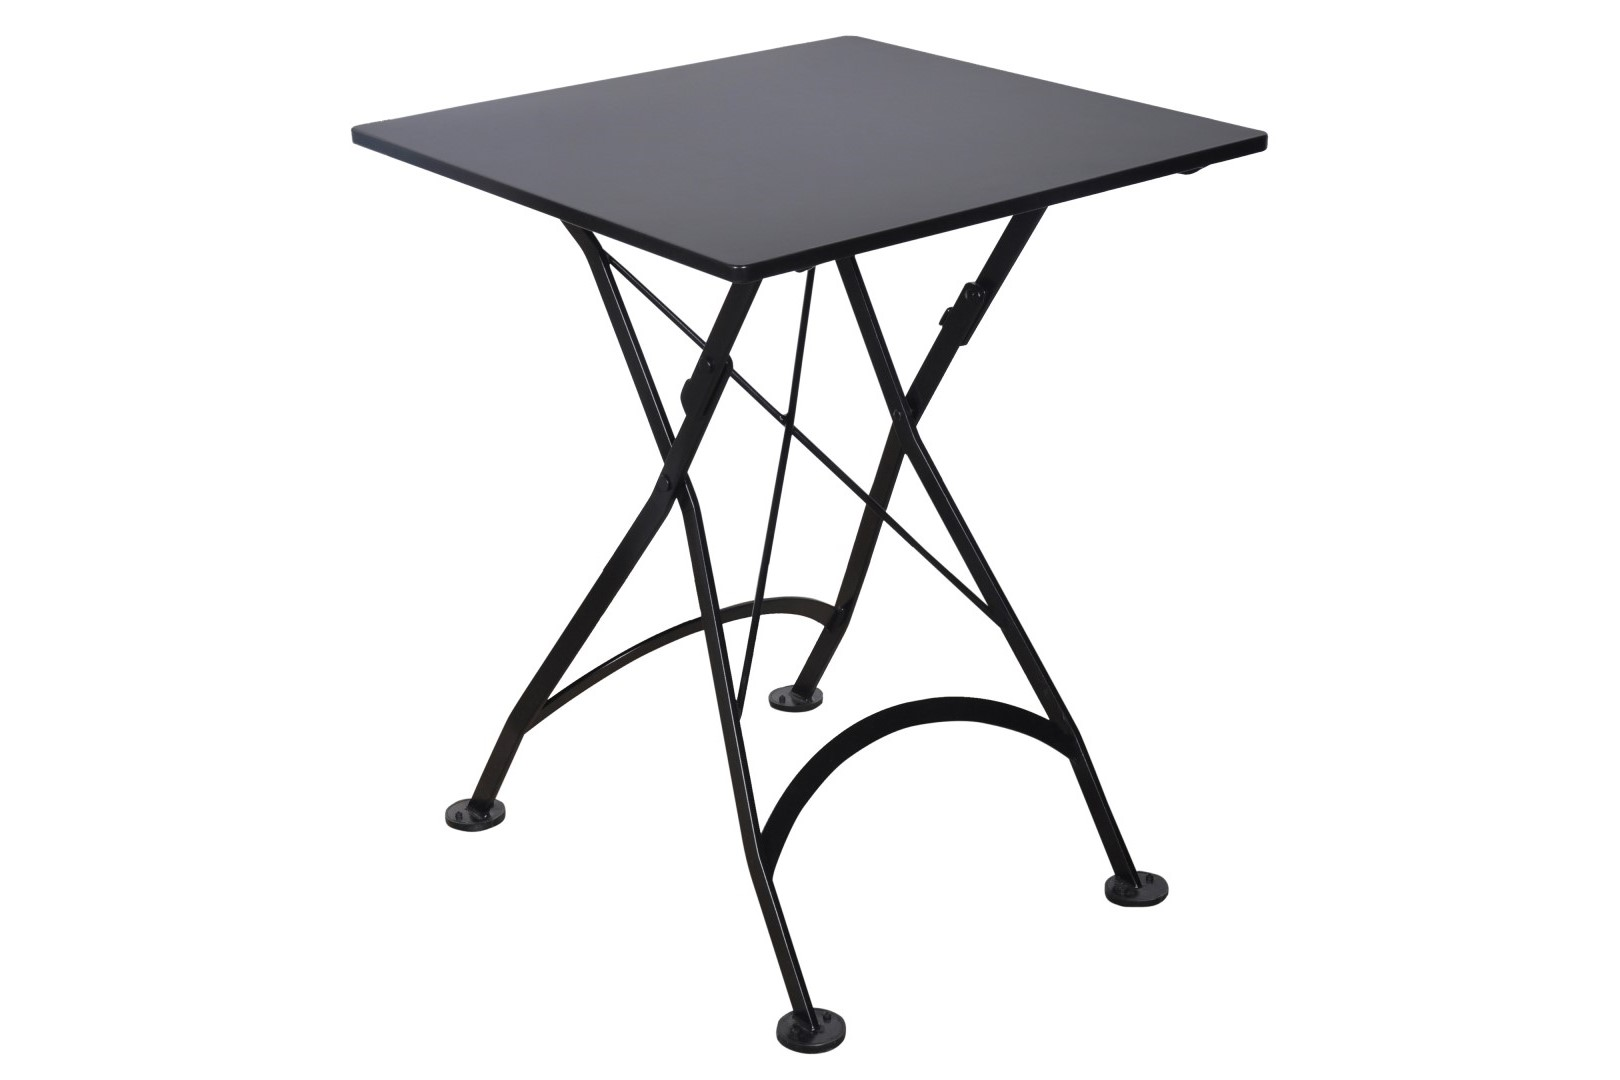 Square Top Steel Tables Outdoor Folding Page